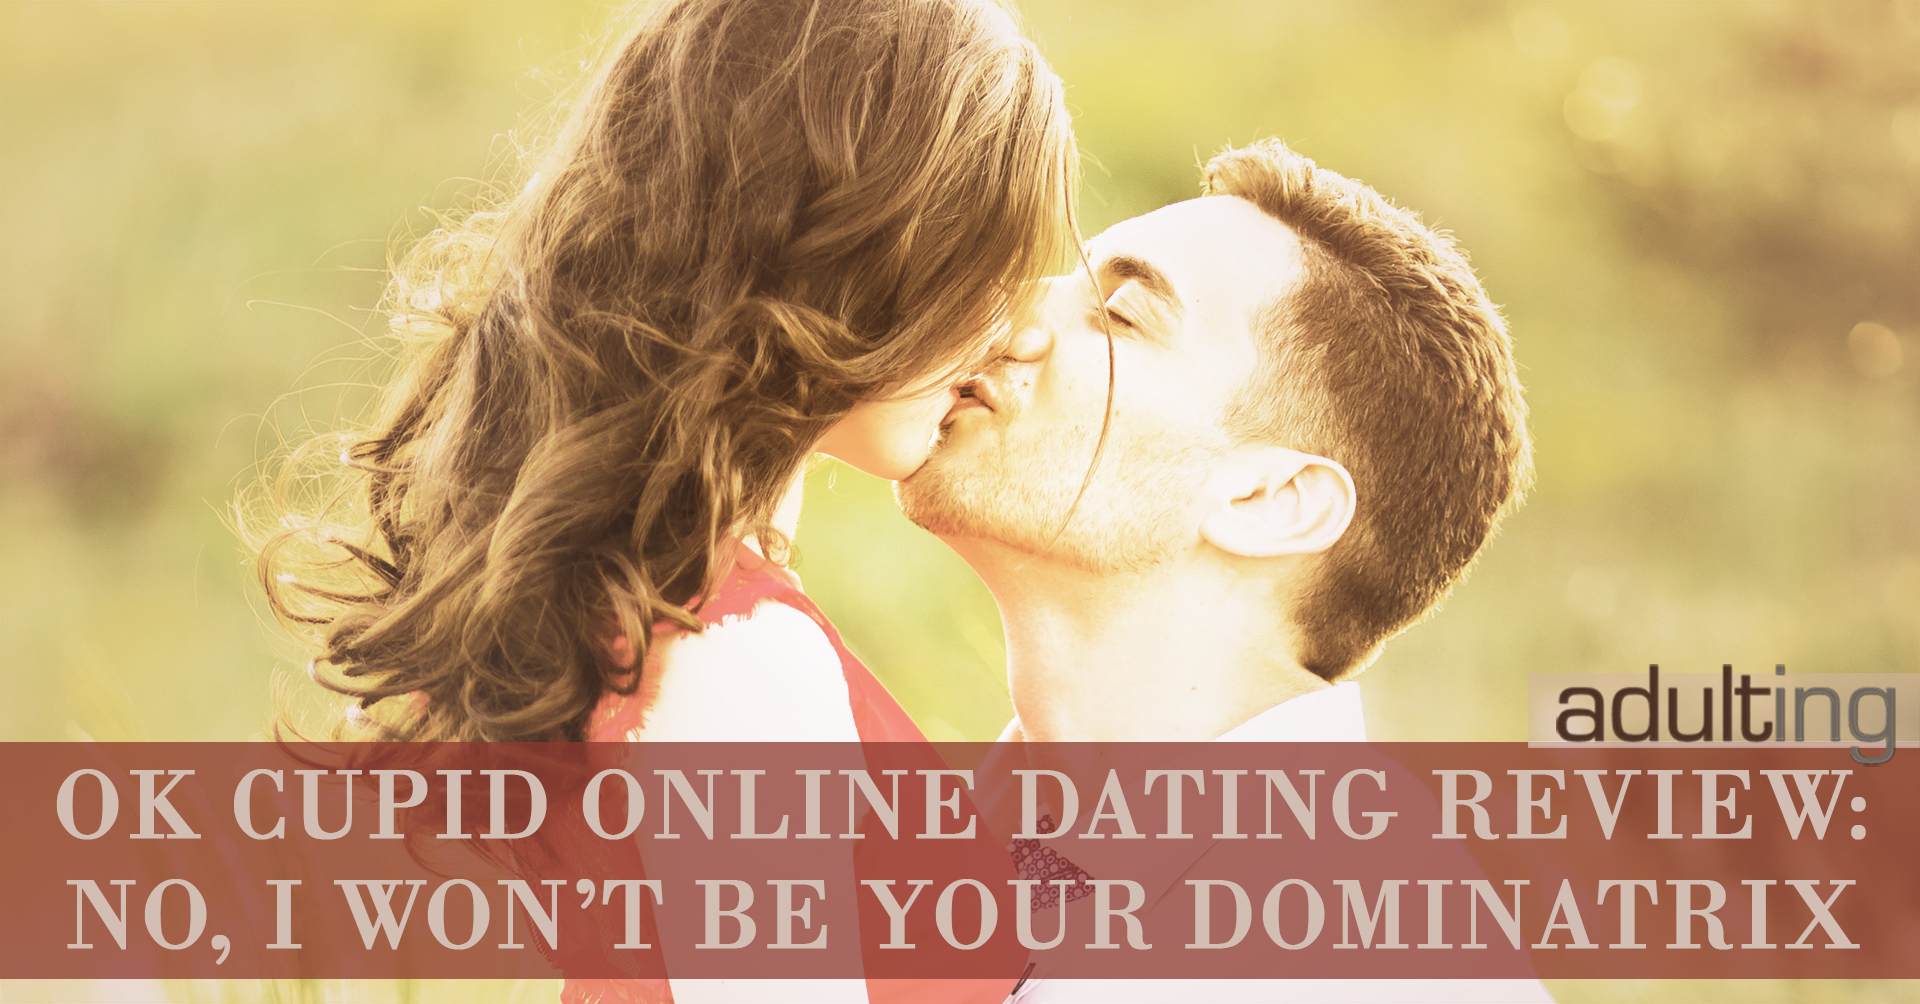 Biggest internet dating site